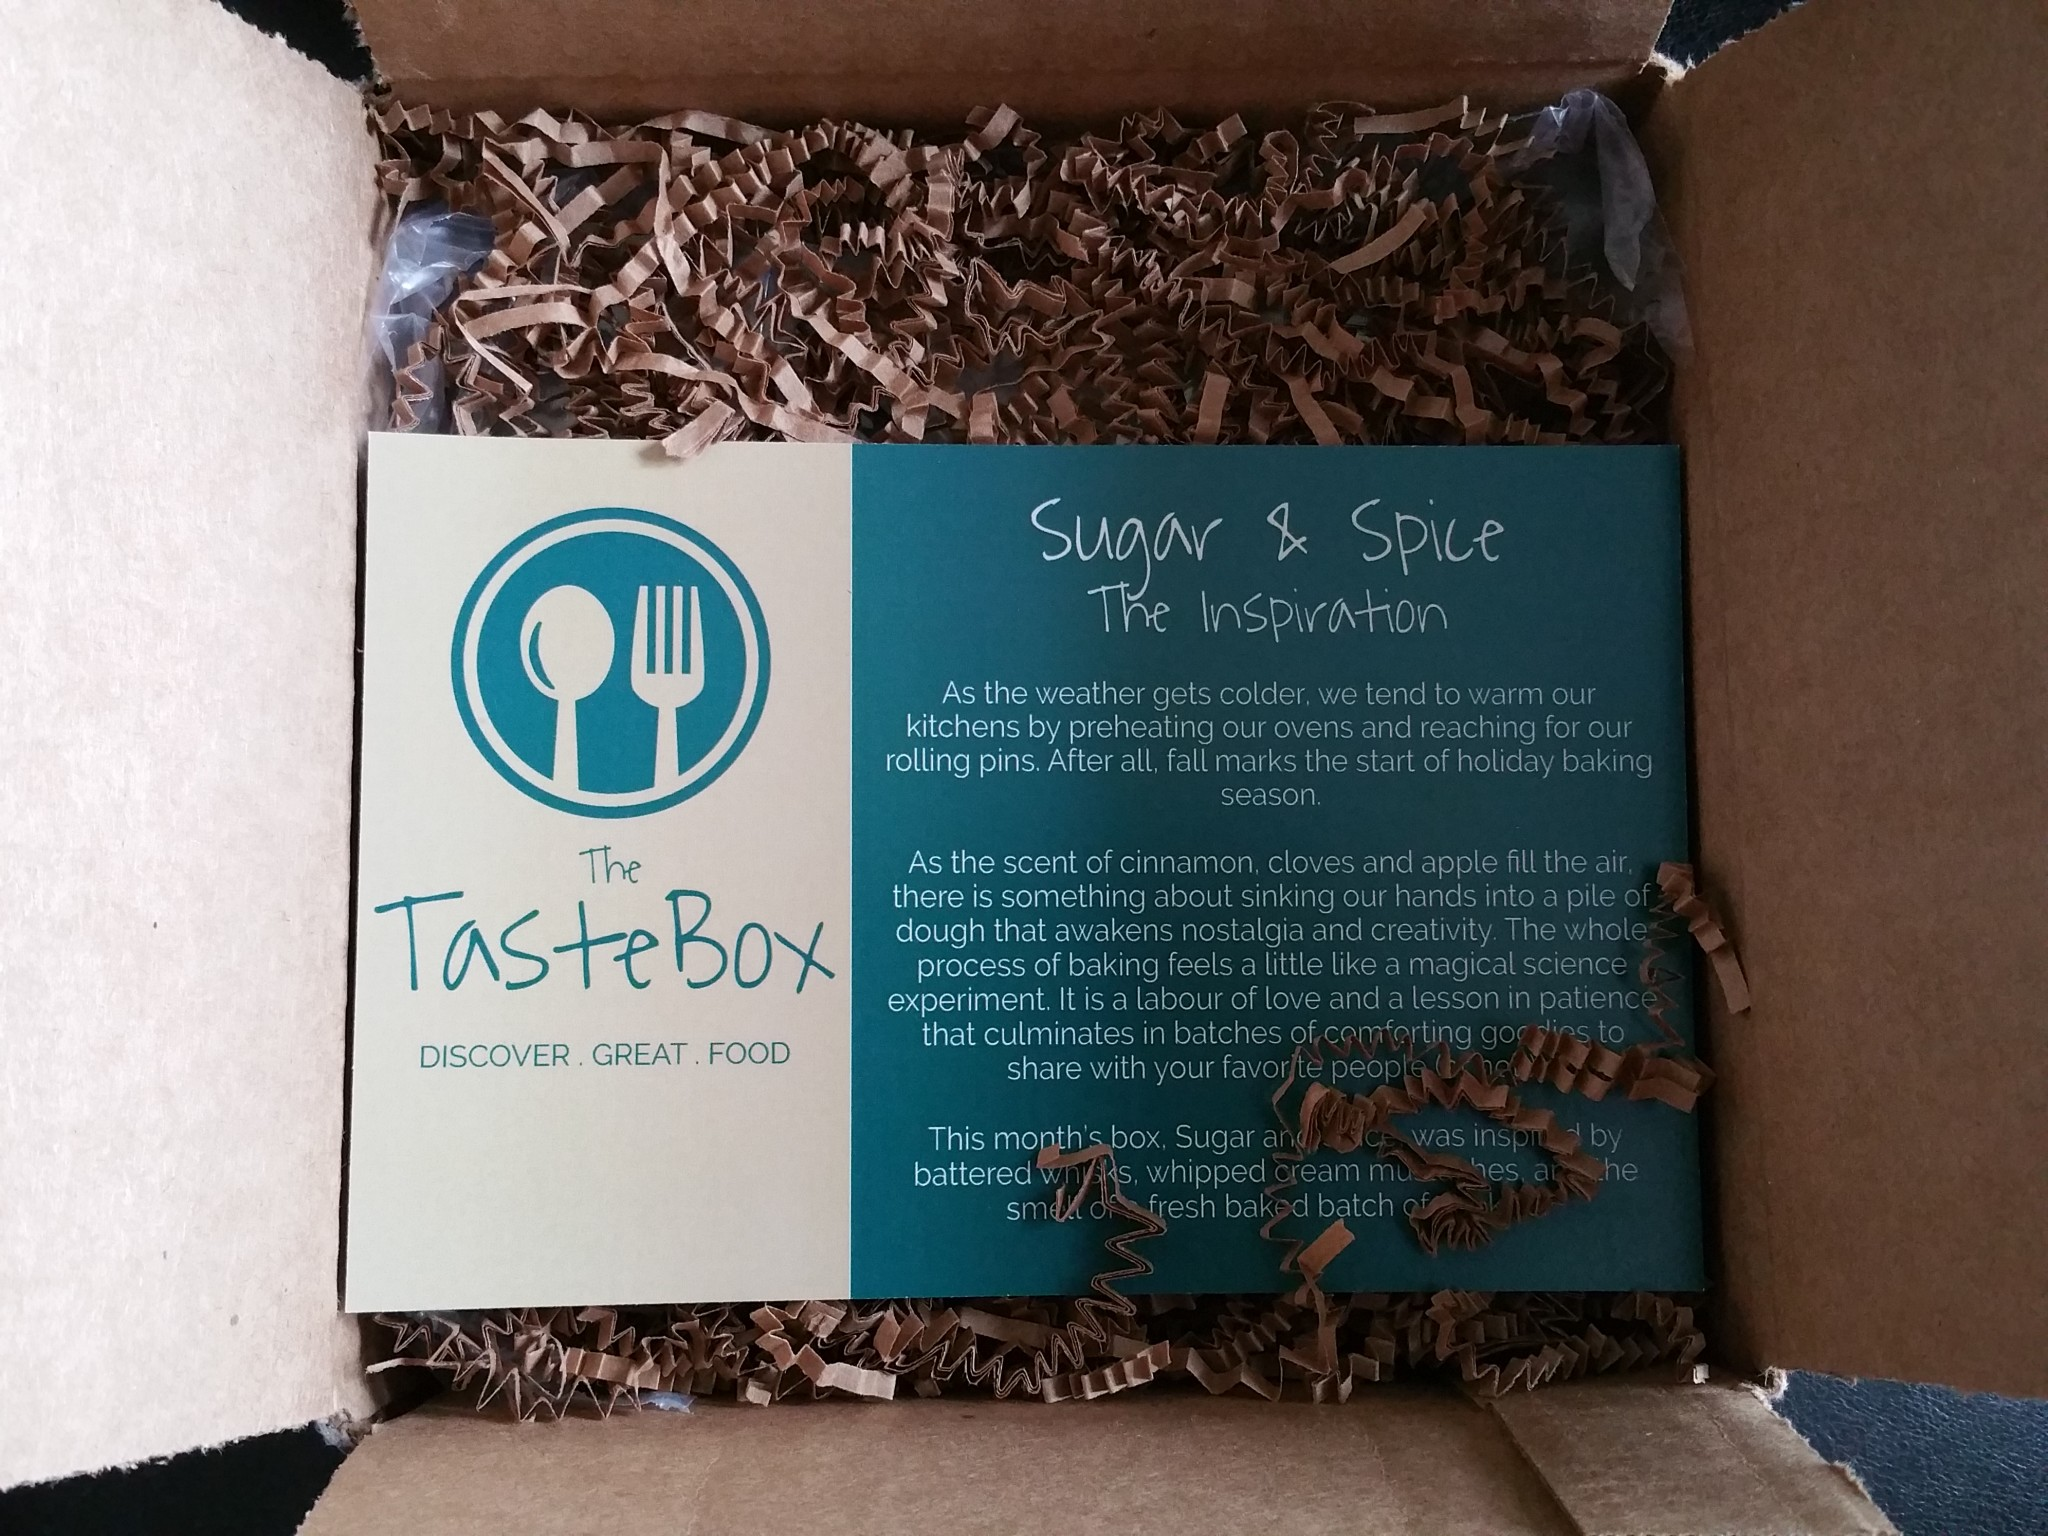 Introducing The Taste Box, featuring chef-inspired ingredients ...